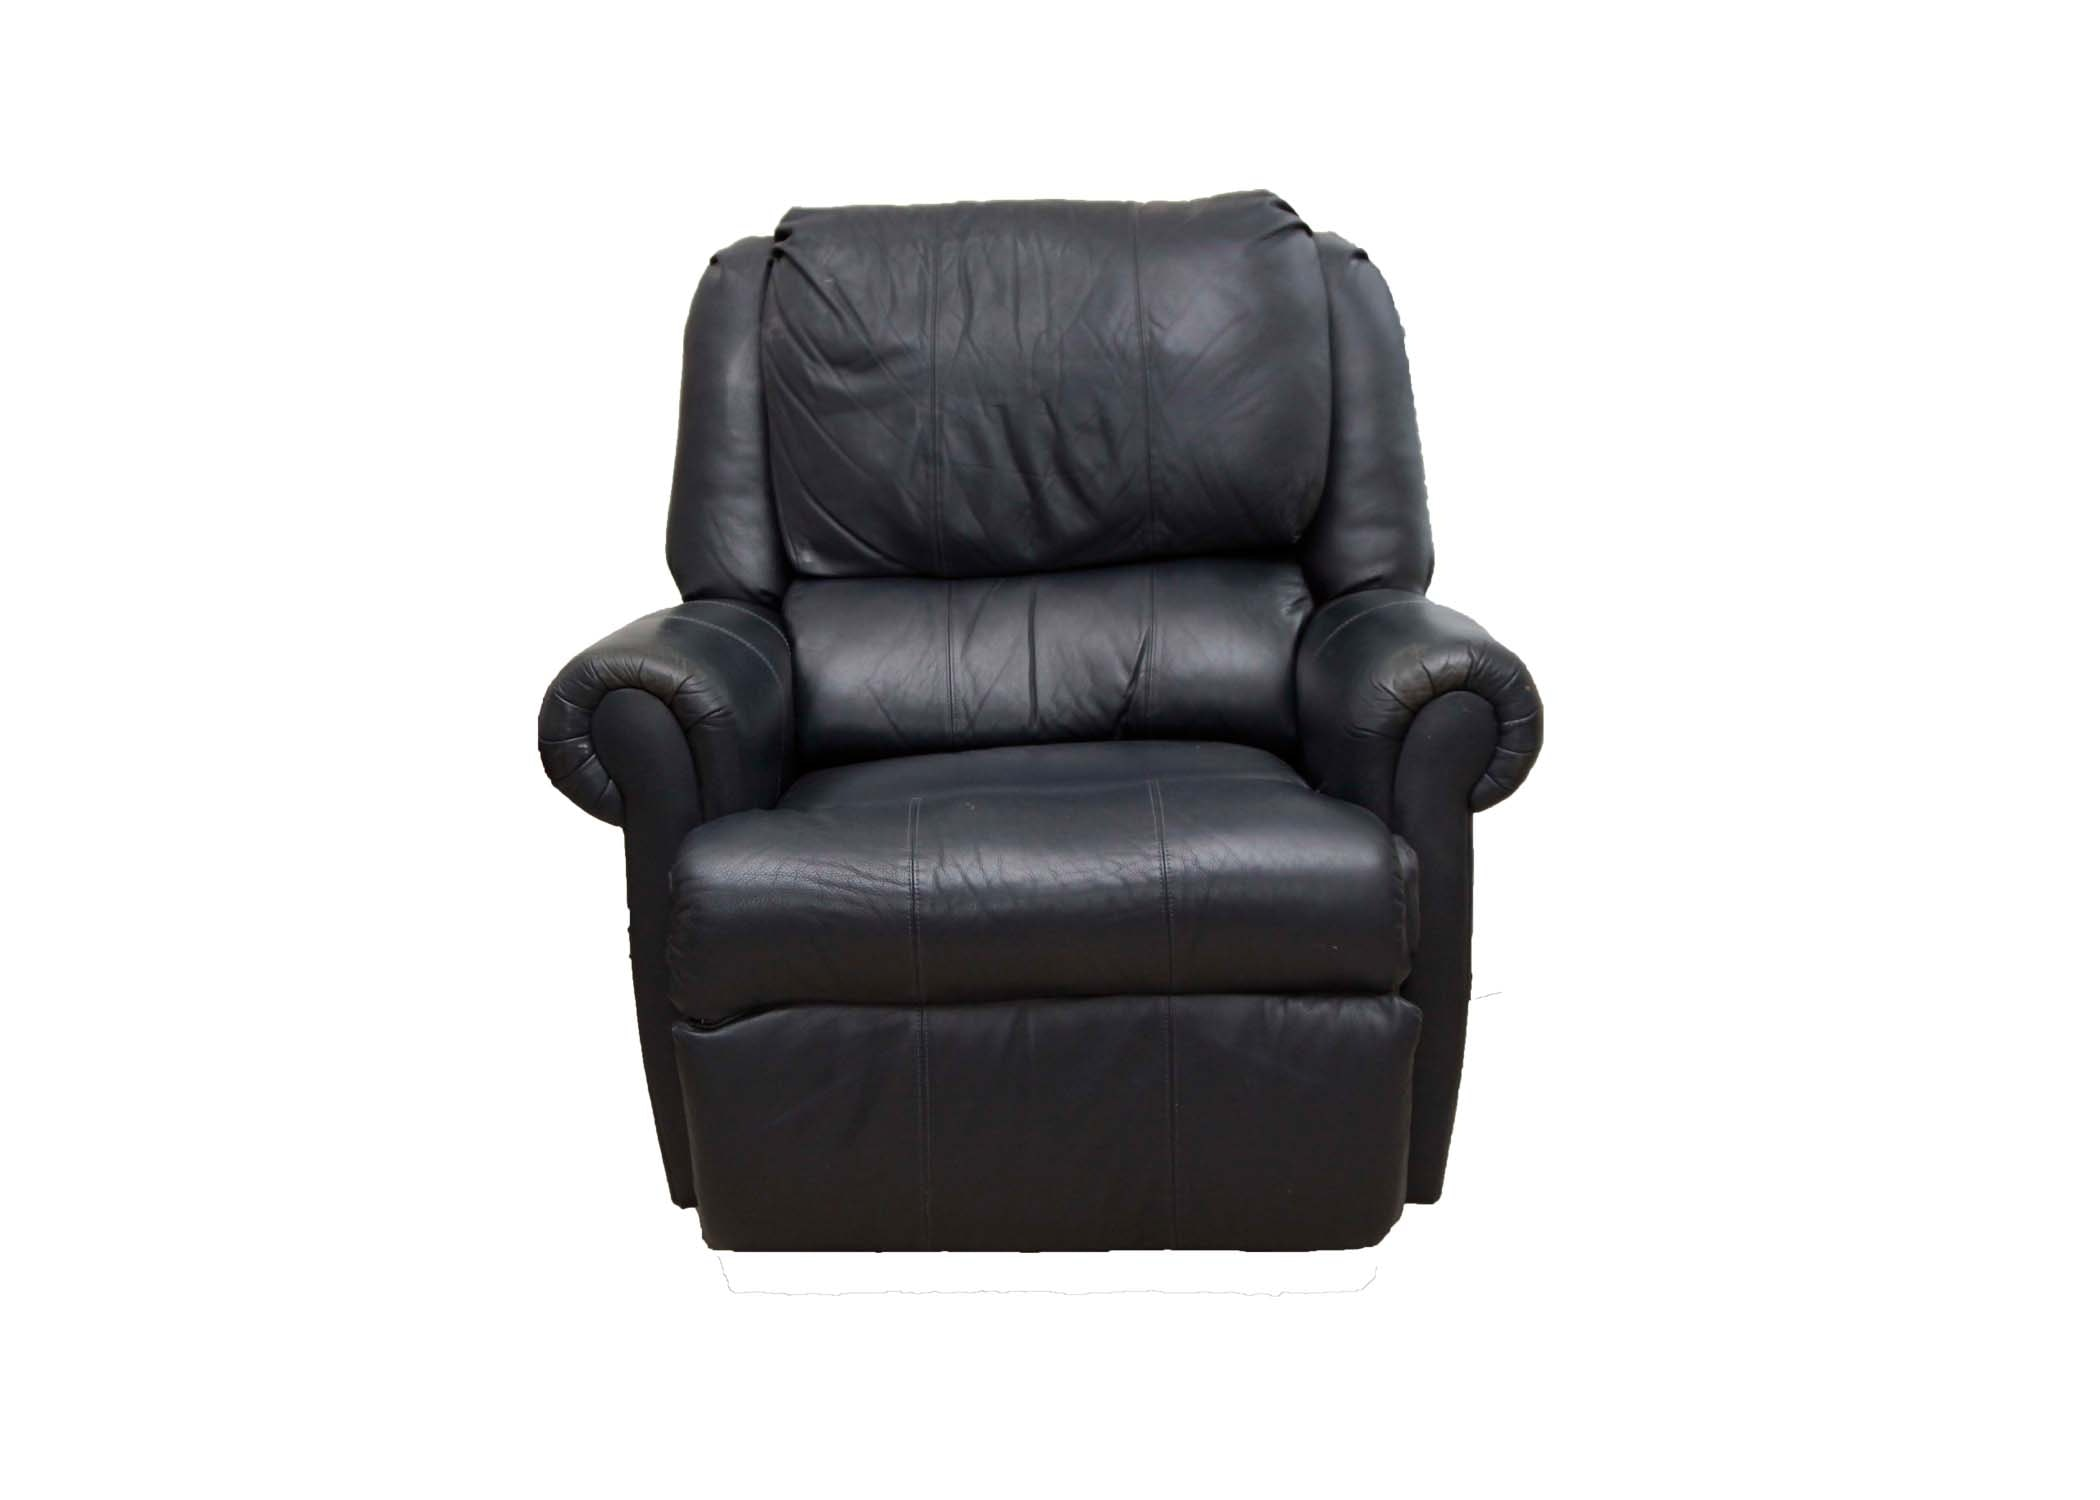 Leather Barcalounger Recliner